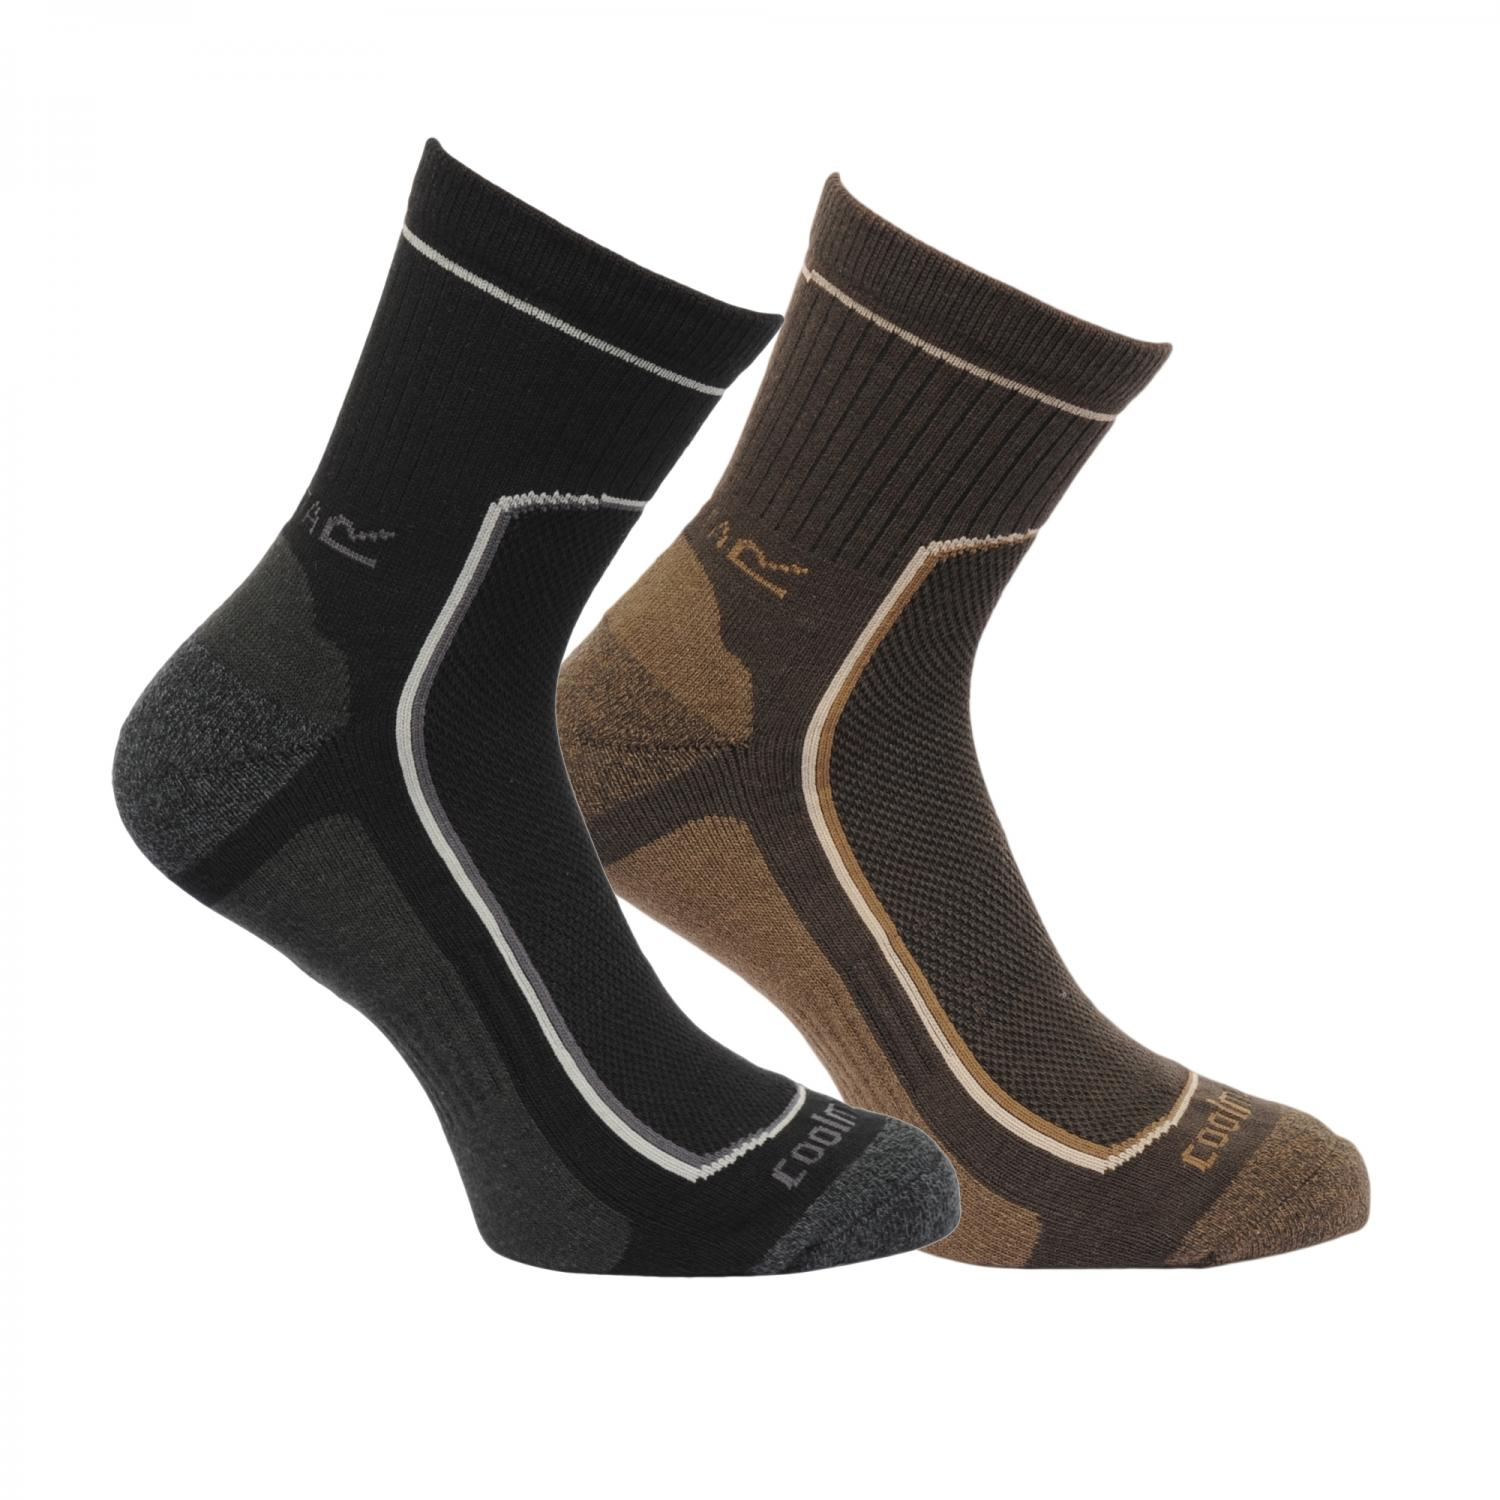 Mens 2 Pack Active Lifestyle Socks Black Clove